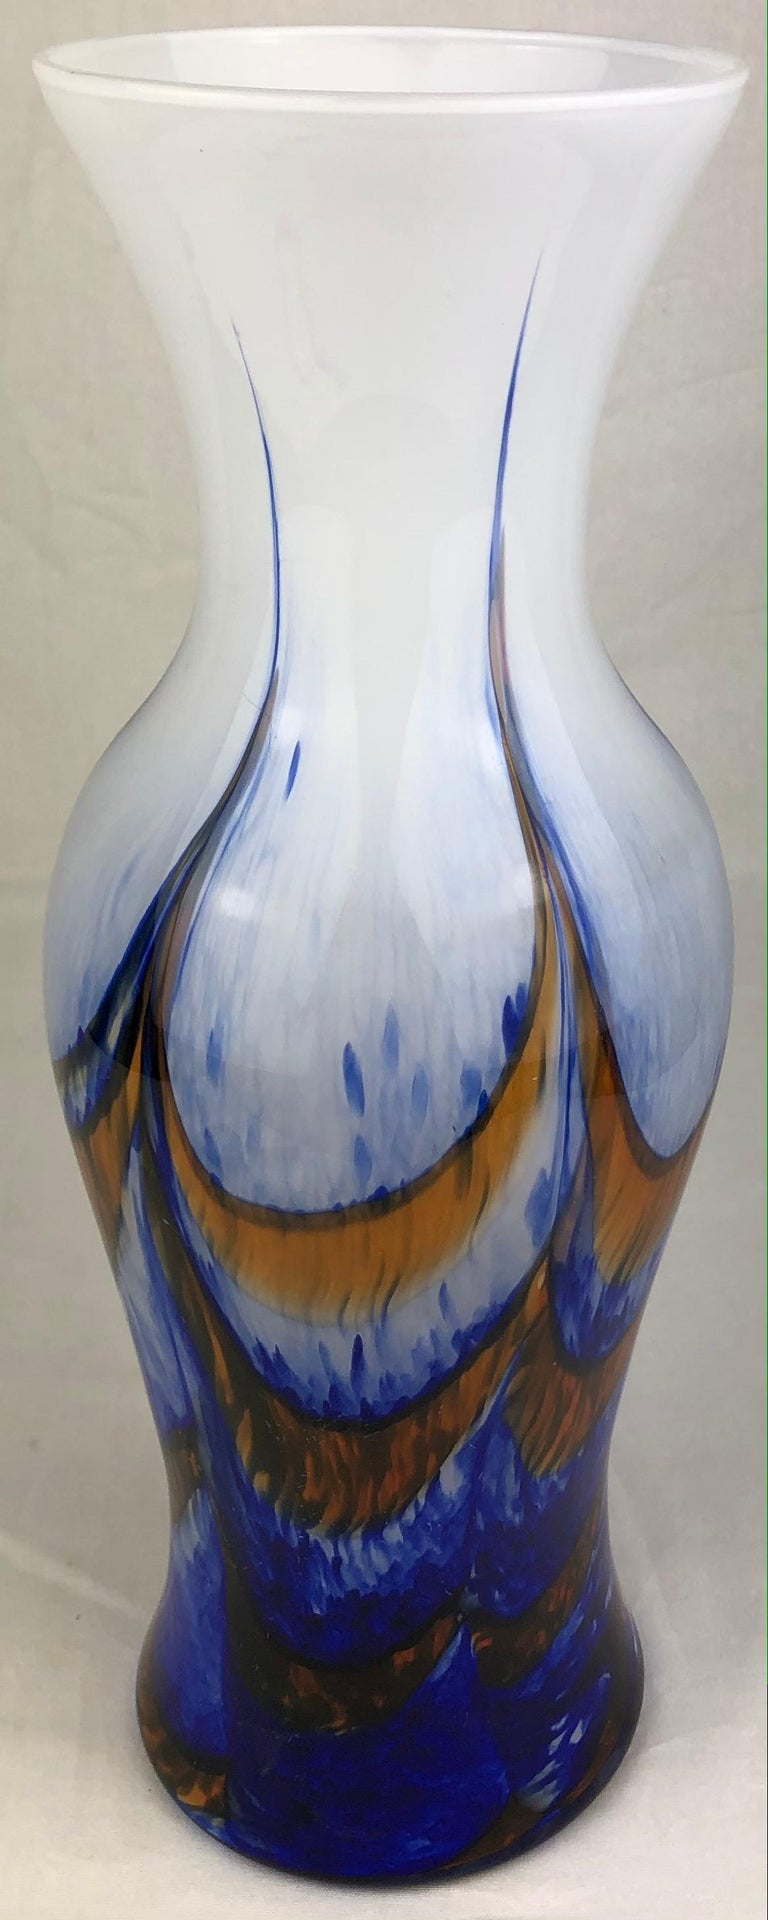 A white, blue and orange variegated tall art glass vase perfect as a center piece on a dining or side table. French Art Deco transition period, attributed to Schneider Glassworks. White background with beautiful blue and orange swirl motifs.